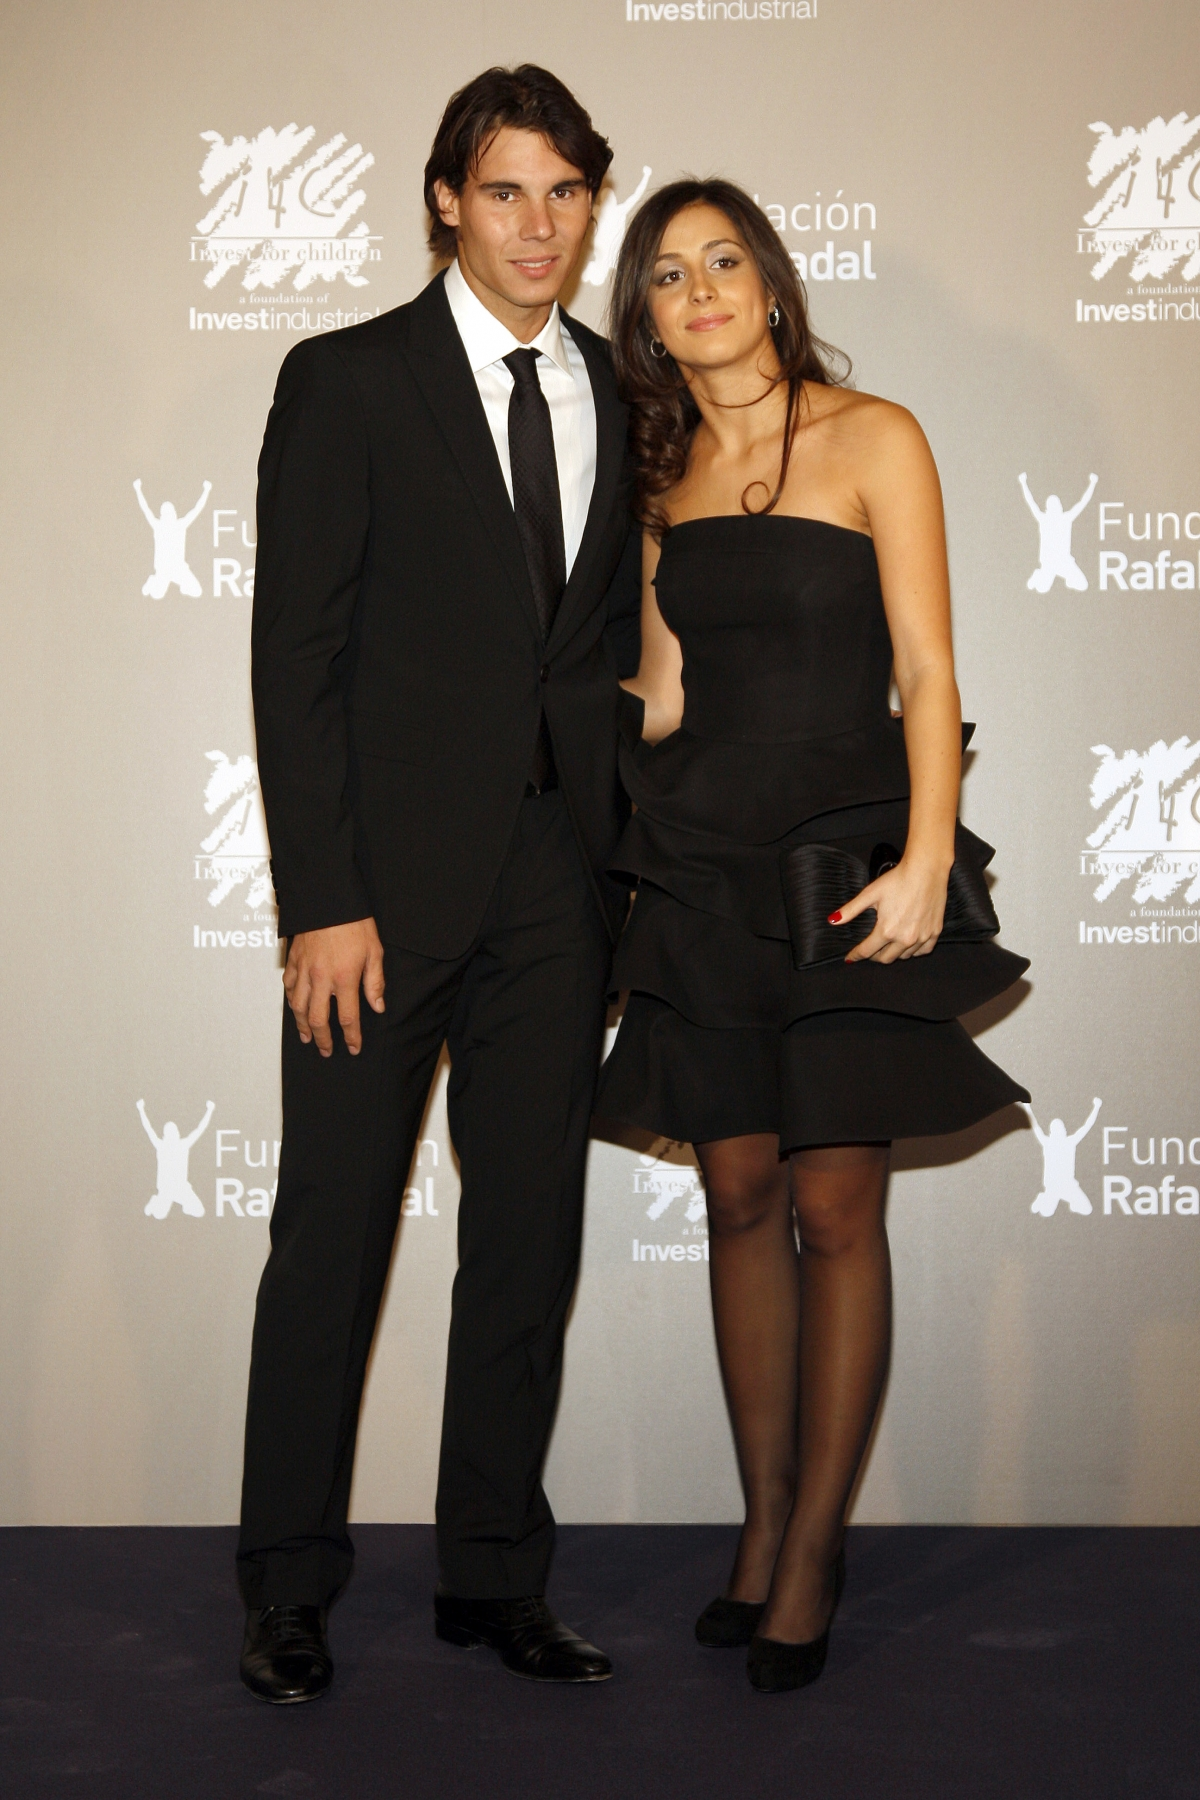 Ndal and Perello attend charity function in Madrid last year. (getty)